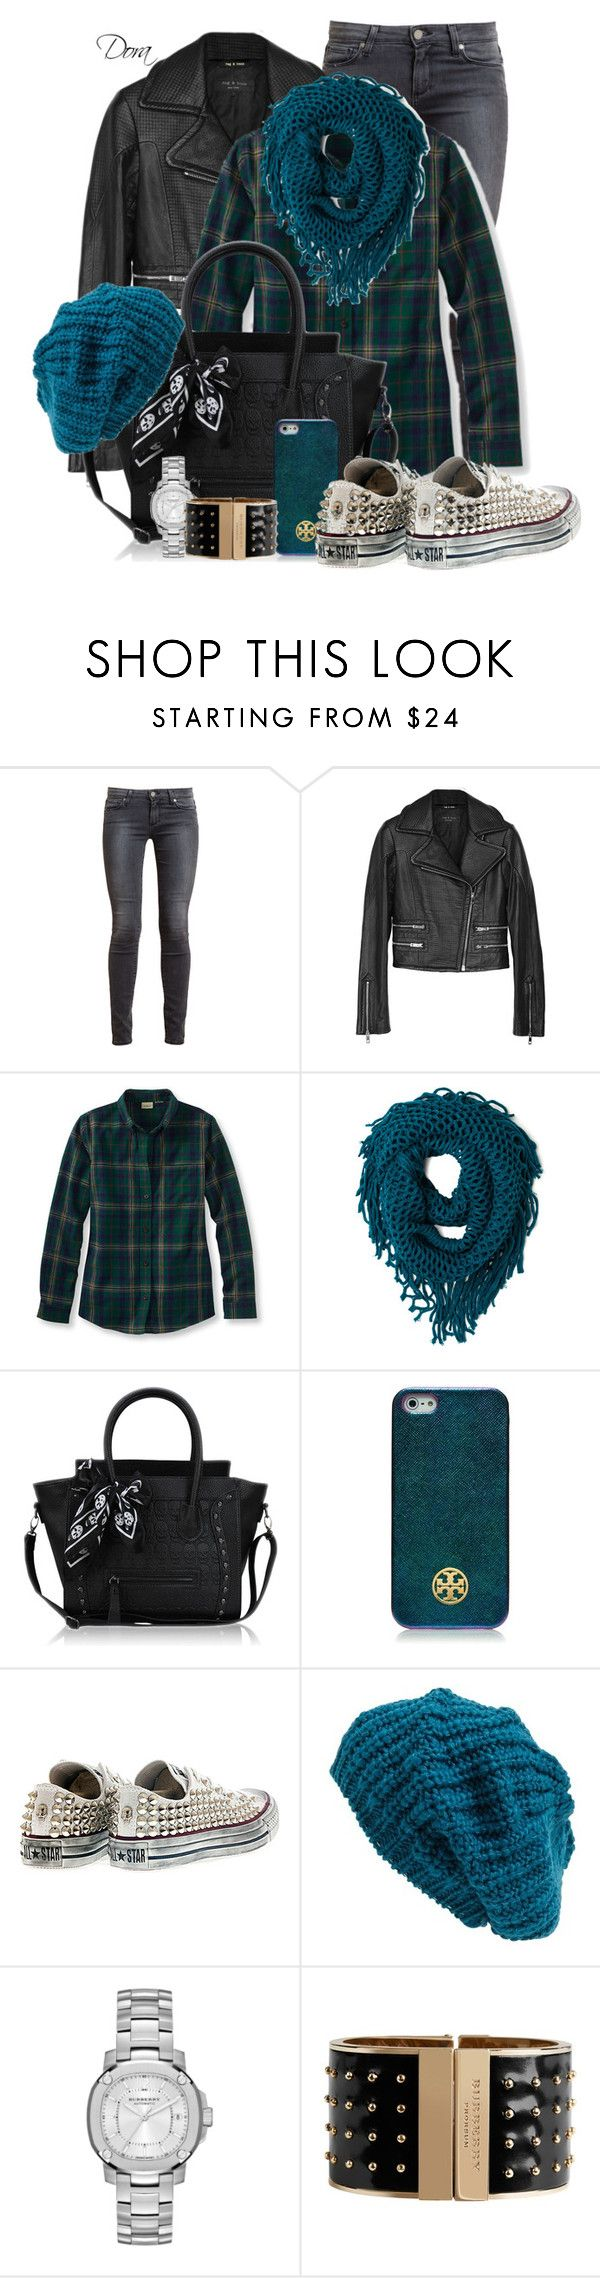 """Converse&turchese"" by doradabrowska ❤ liked on Polyvore featuring мода, Paige Denim, rag & bone, Tory Burch, Converse, Leith и Burberry"